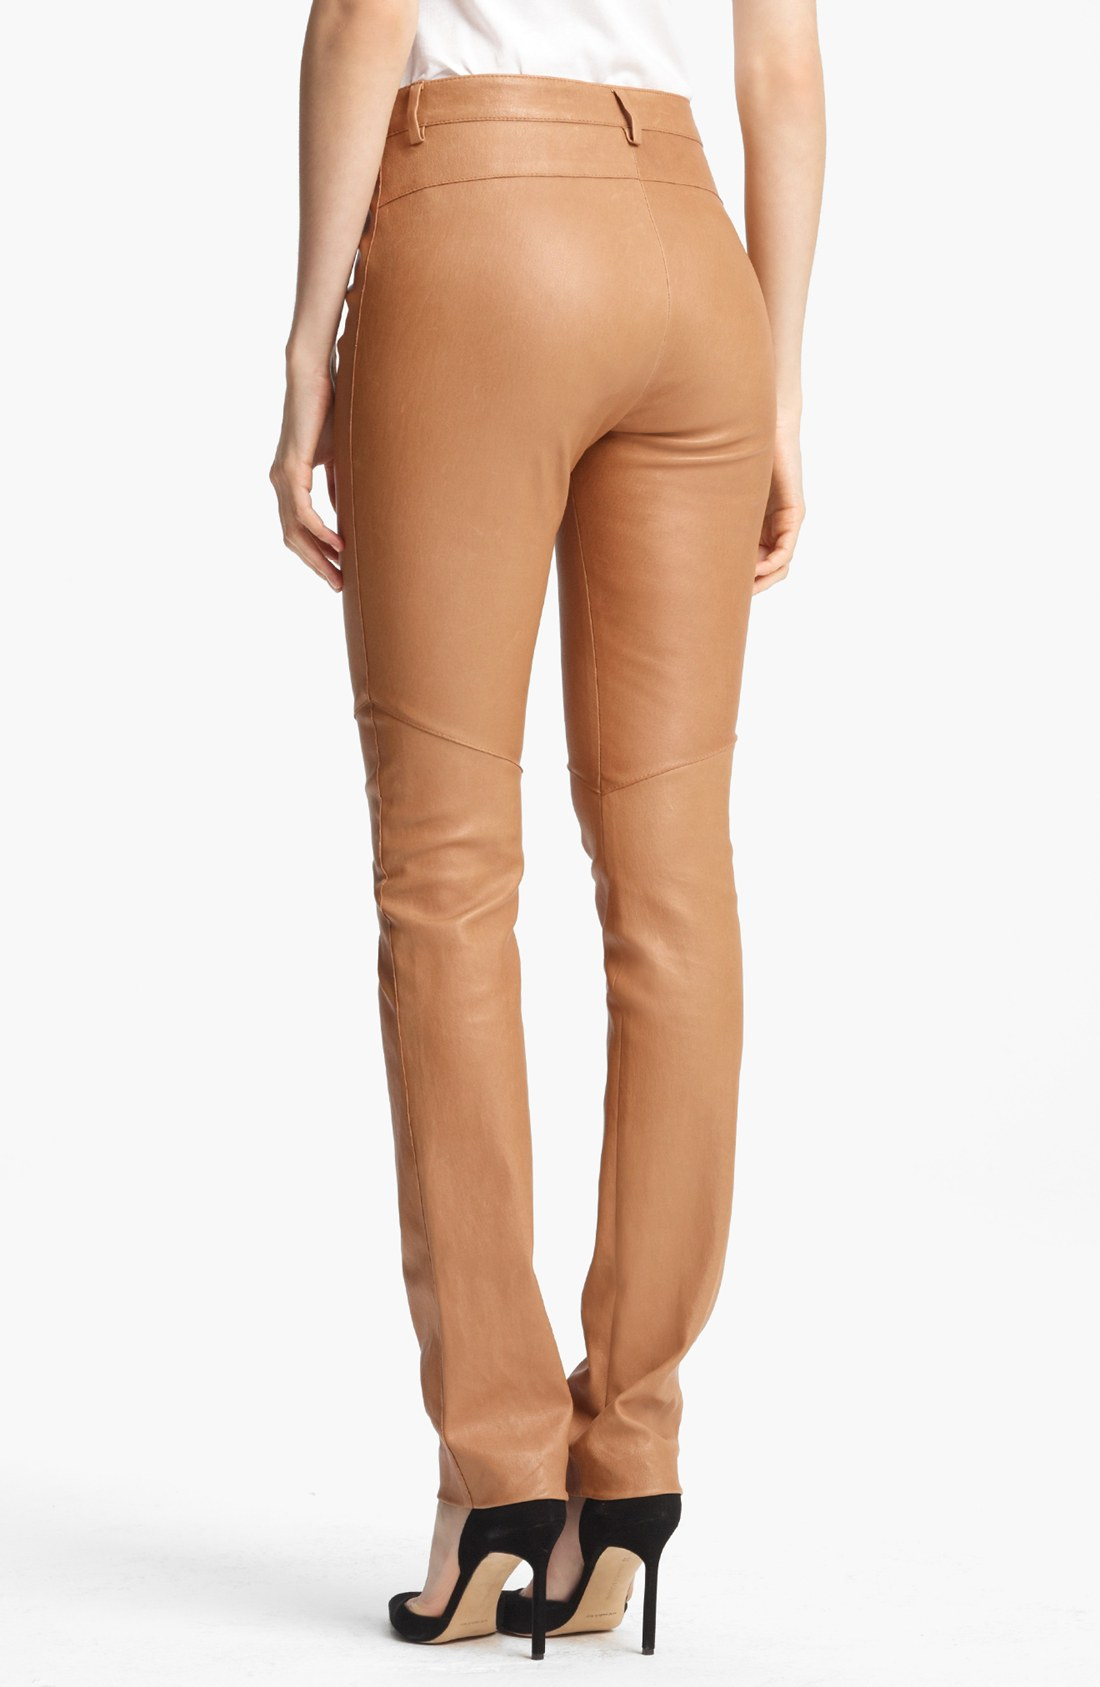 You searched for: brown leather pants! Etsy is the home to thousands of handmade, vintage, and one-of-a-kind products and gifts related to your search. No matter what you're looking for or where you are in the world, our global marketplace of sellers can help you find unique and affordable options. Let's get started!